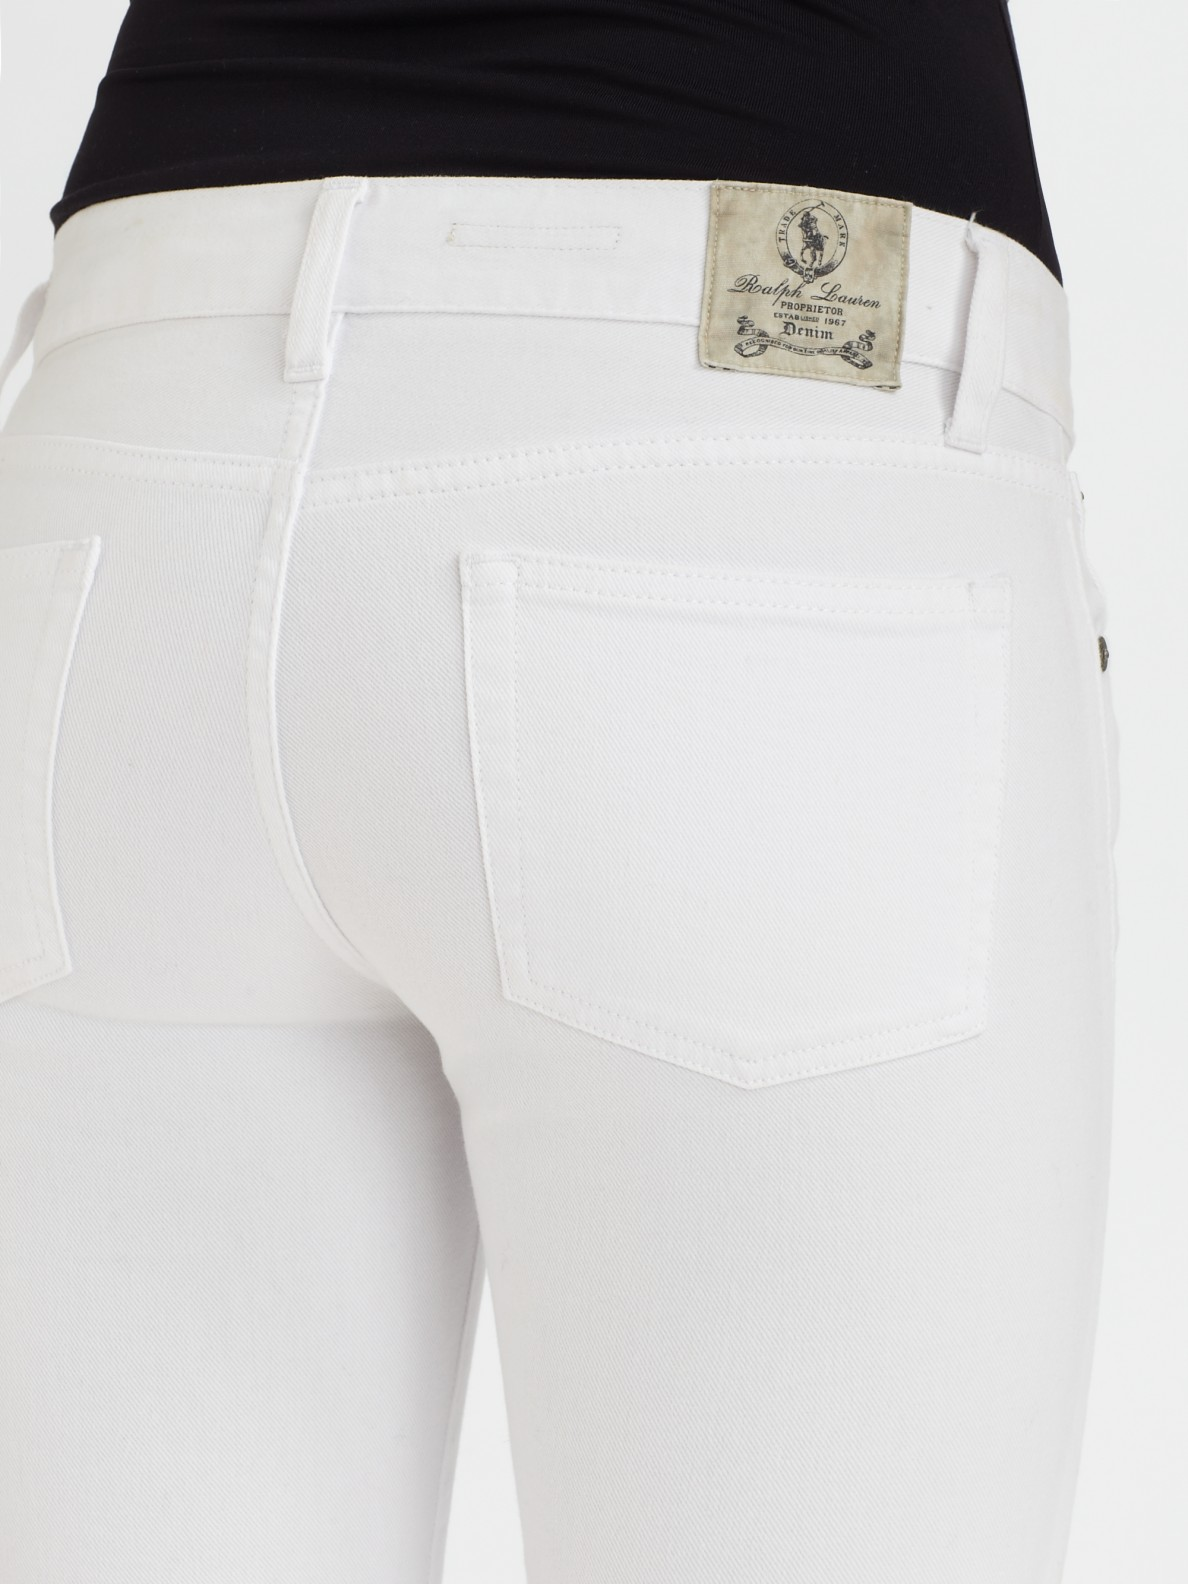 Ralph lauren blue label Stretch Denim Bootcut Jeans in White | Lyst